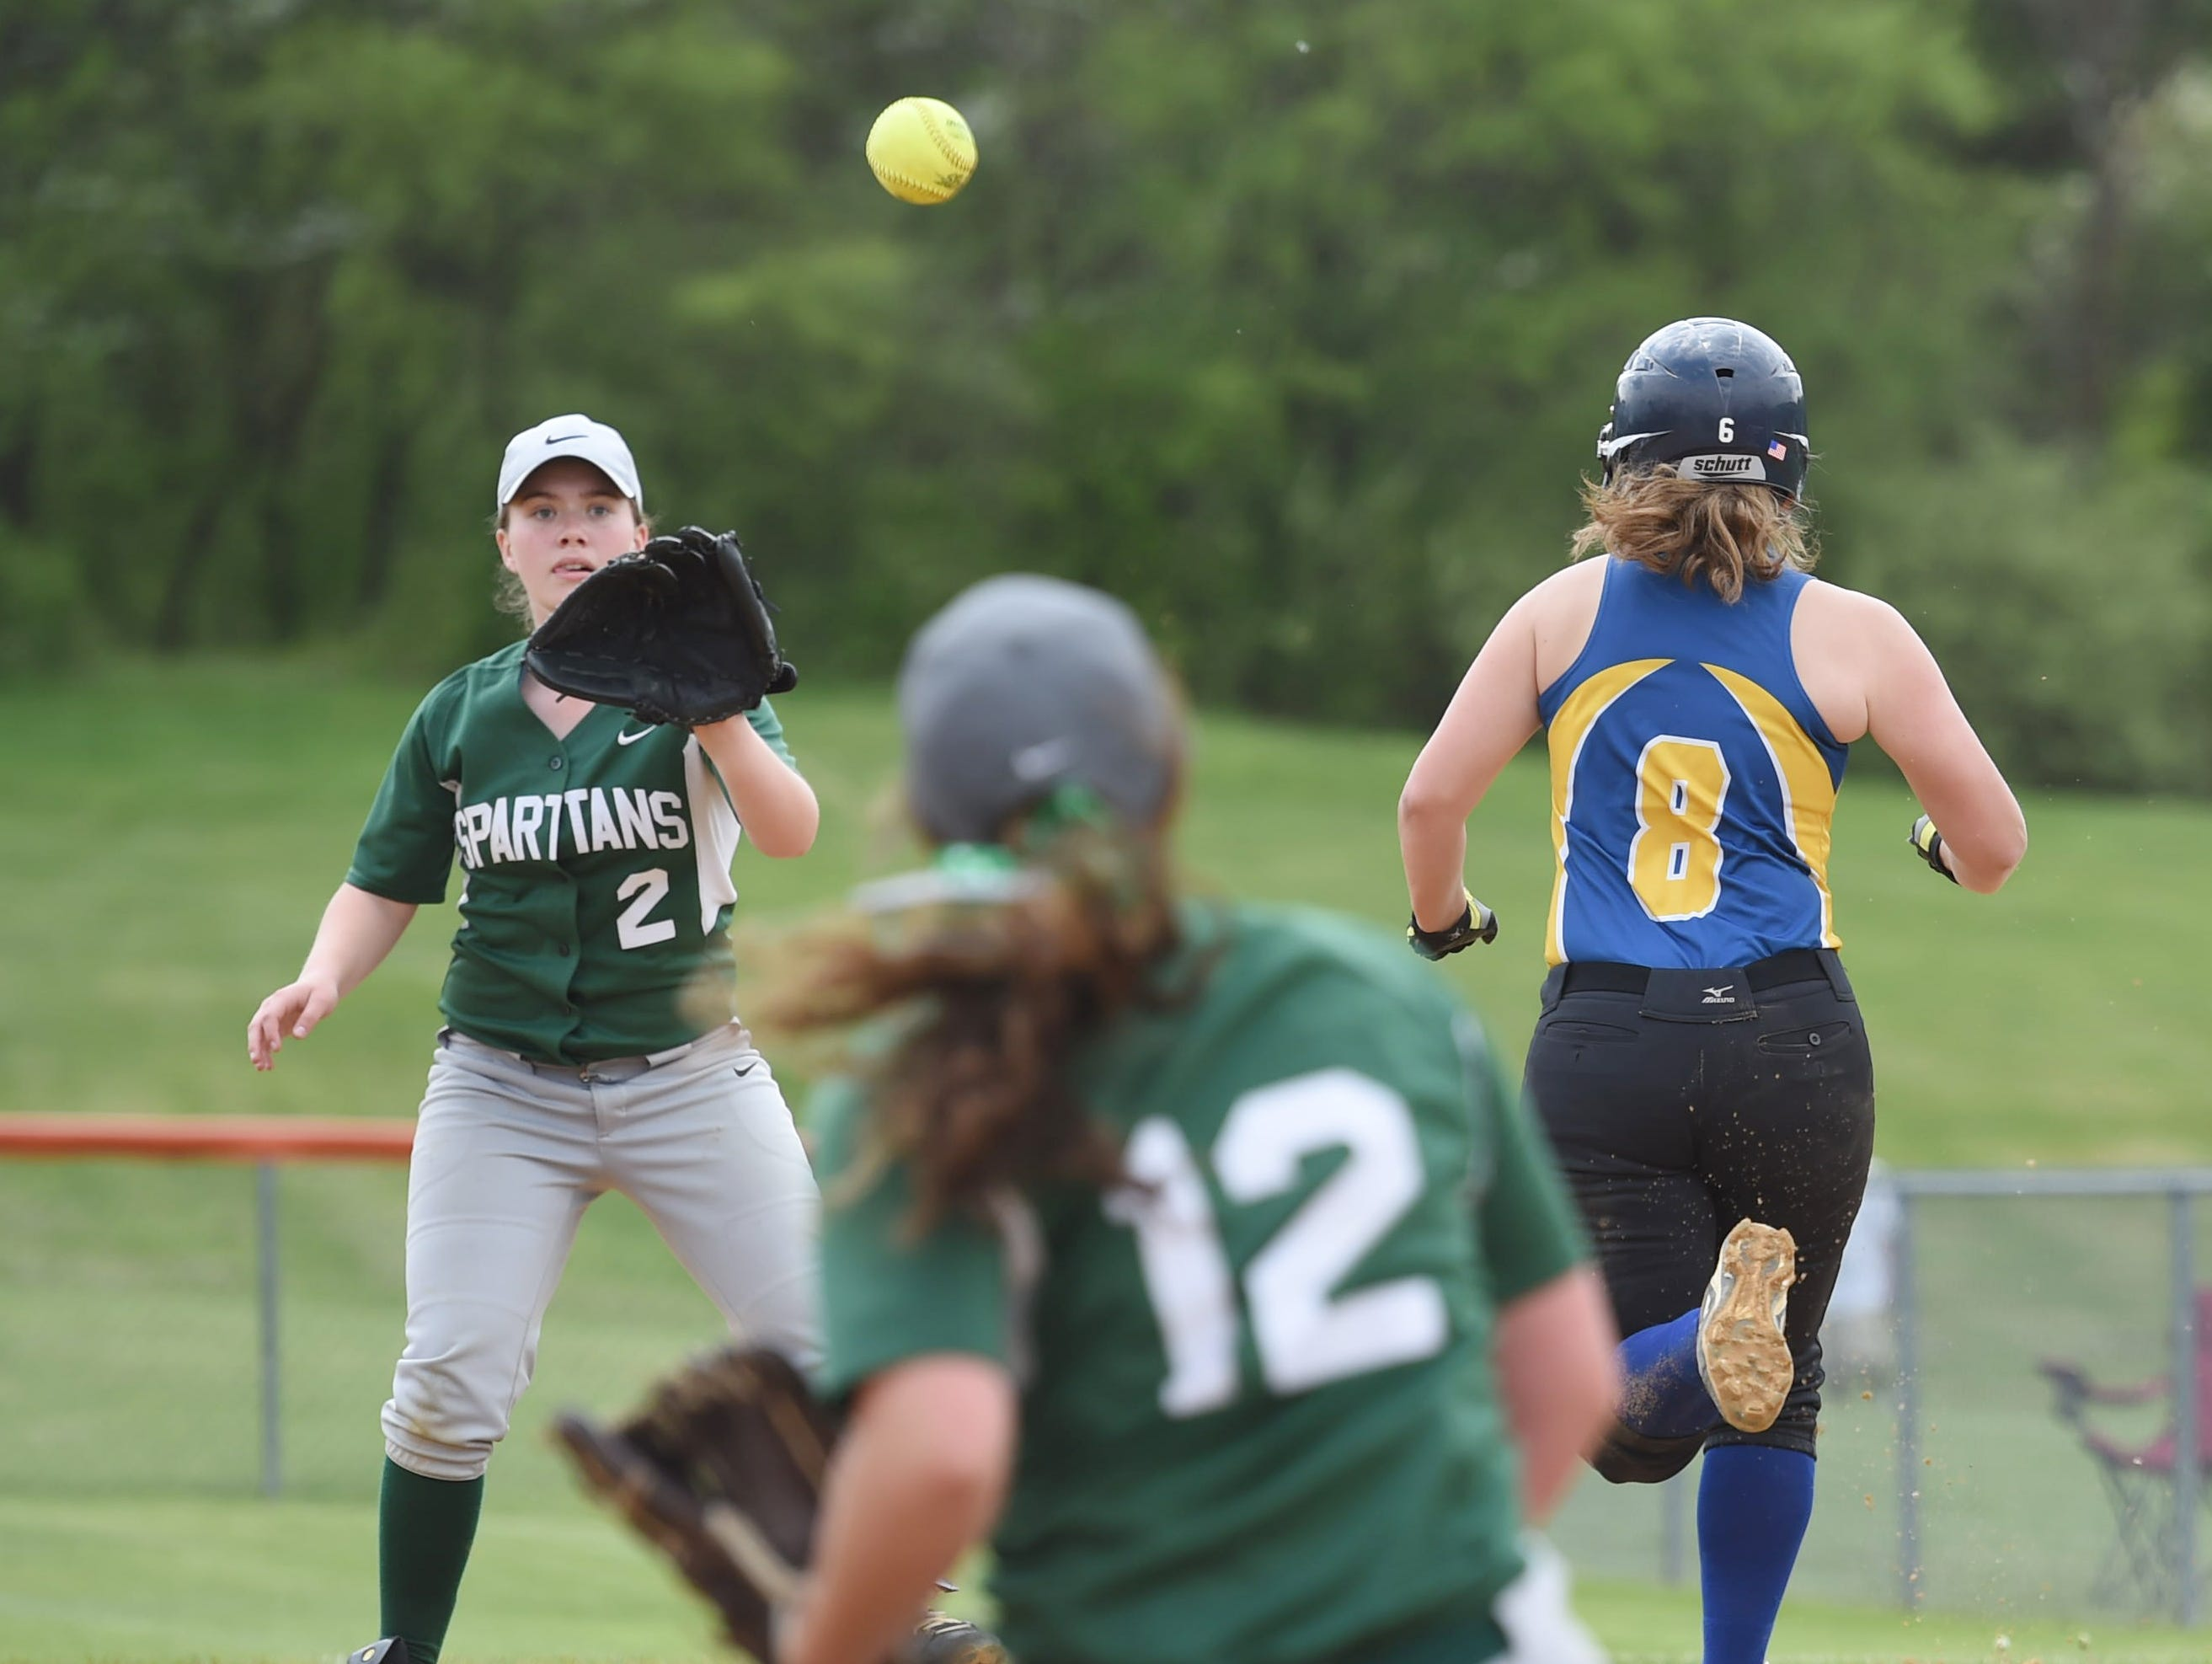 Spackenkill's pitcher, Gabi Mastrantuono recovers a bunt from Ellenville's Mazi Buona and throws to first base, Lexie Close during Saturday's MHAL Division III title game held at Marlboro.